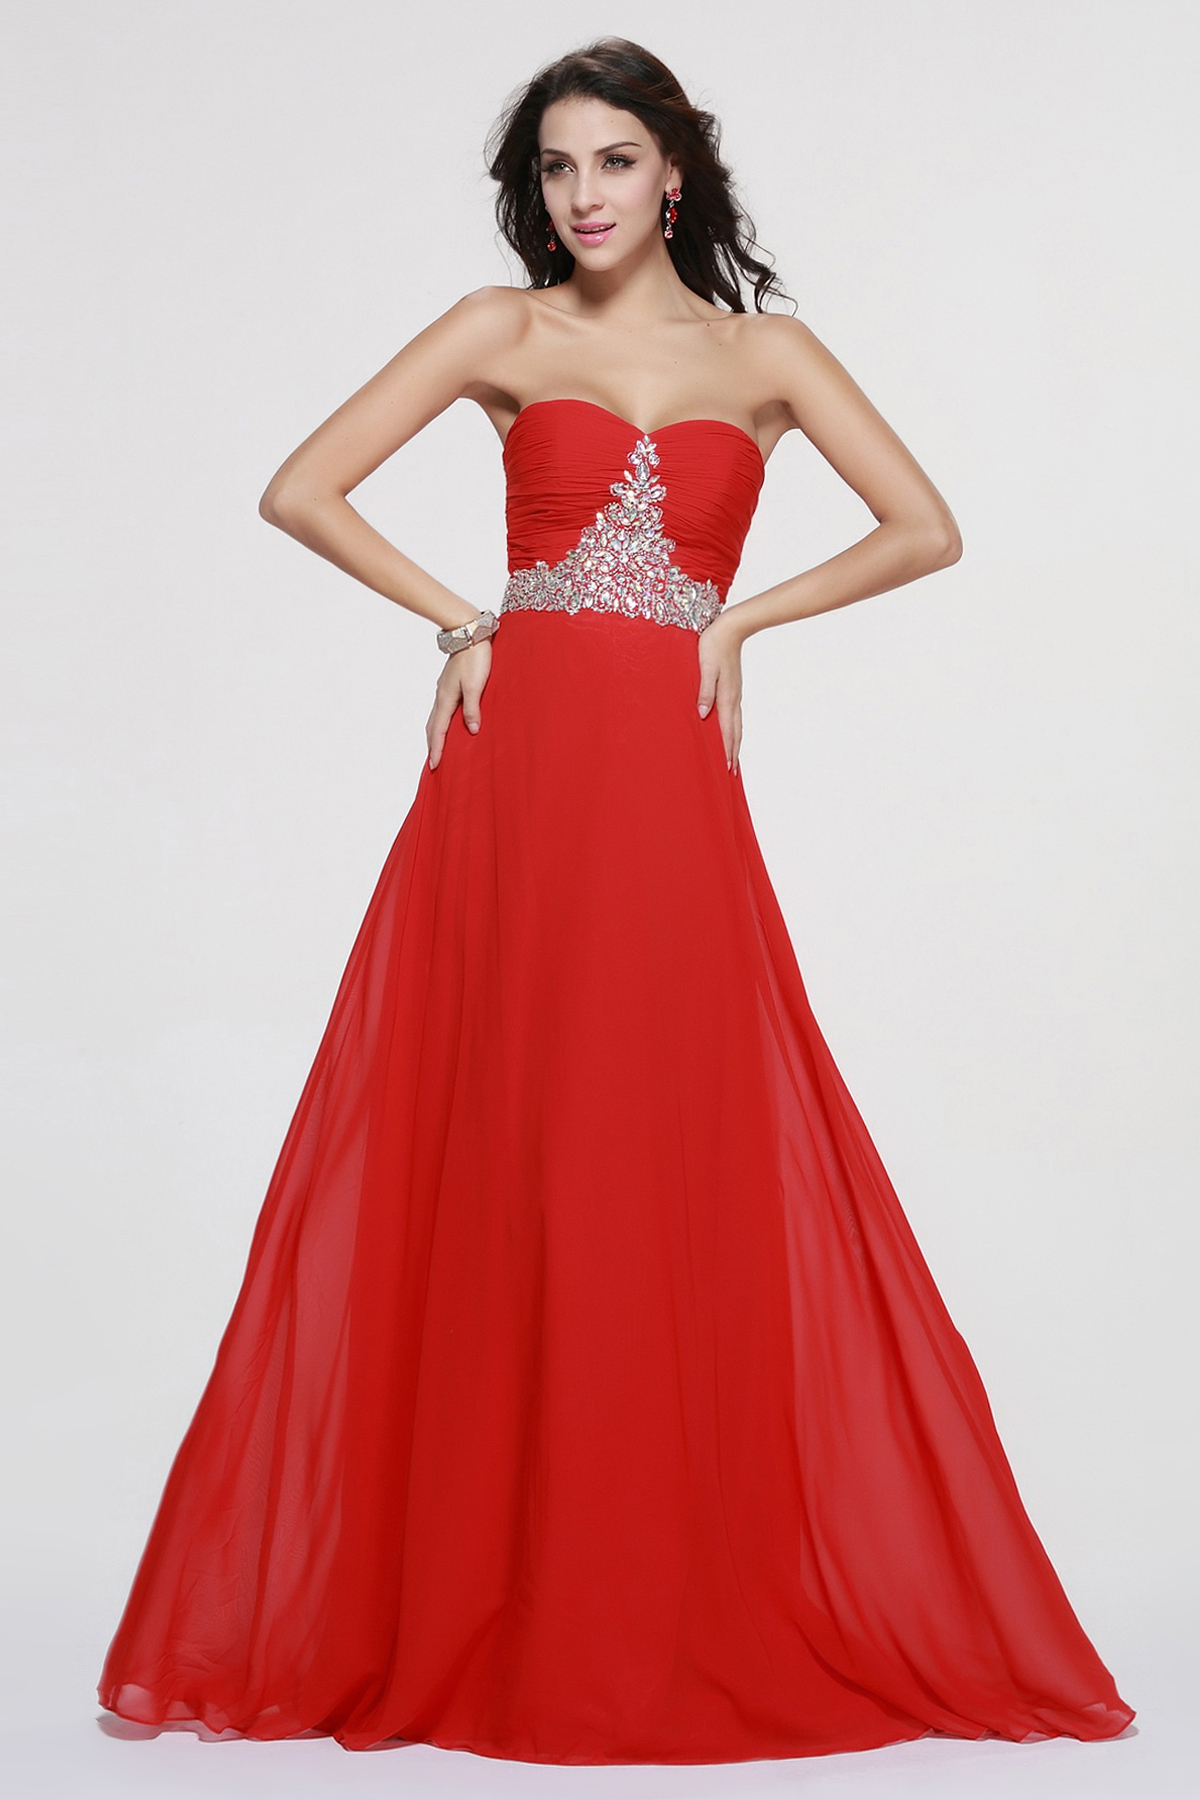 Red Chiffon Strpaless Sweetheart Long Prom Dress Online